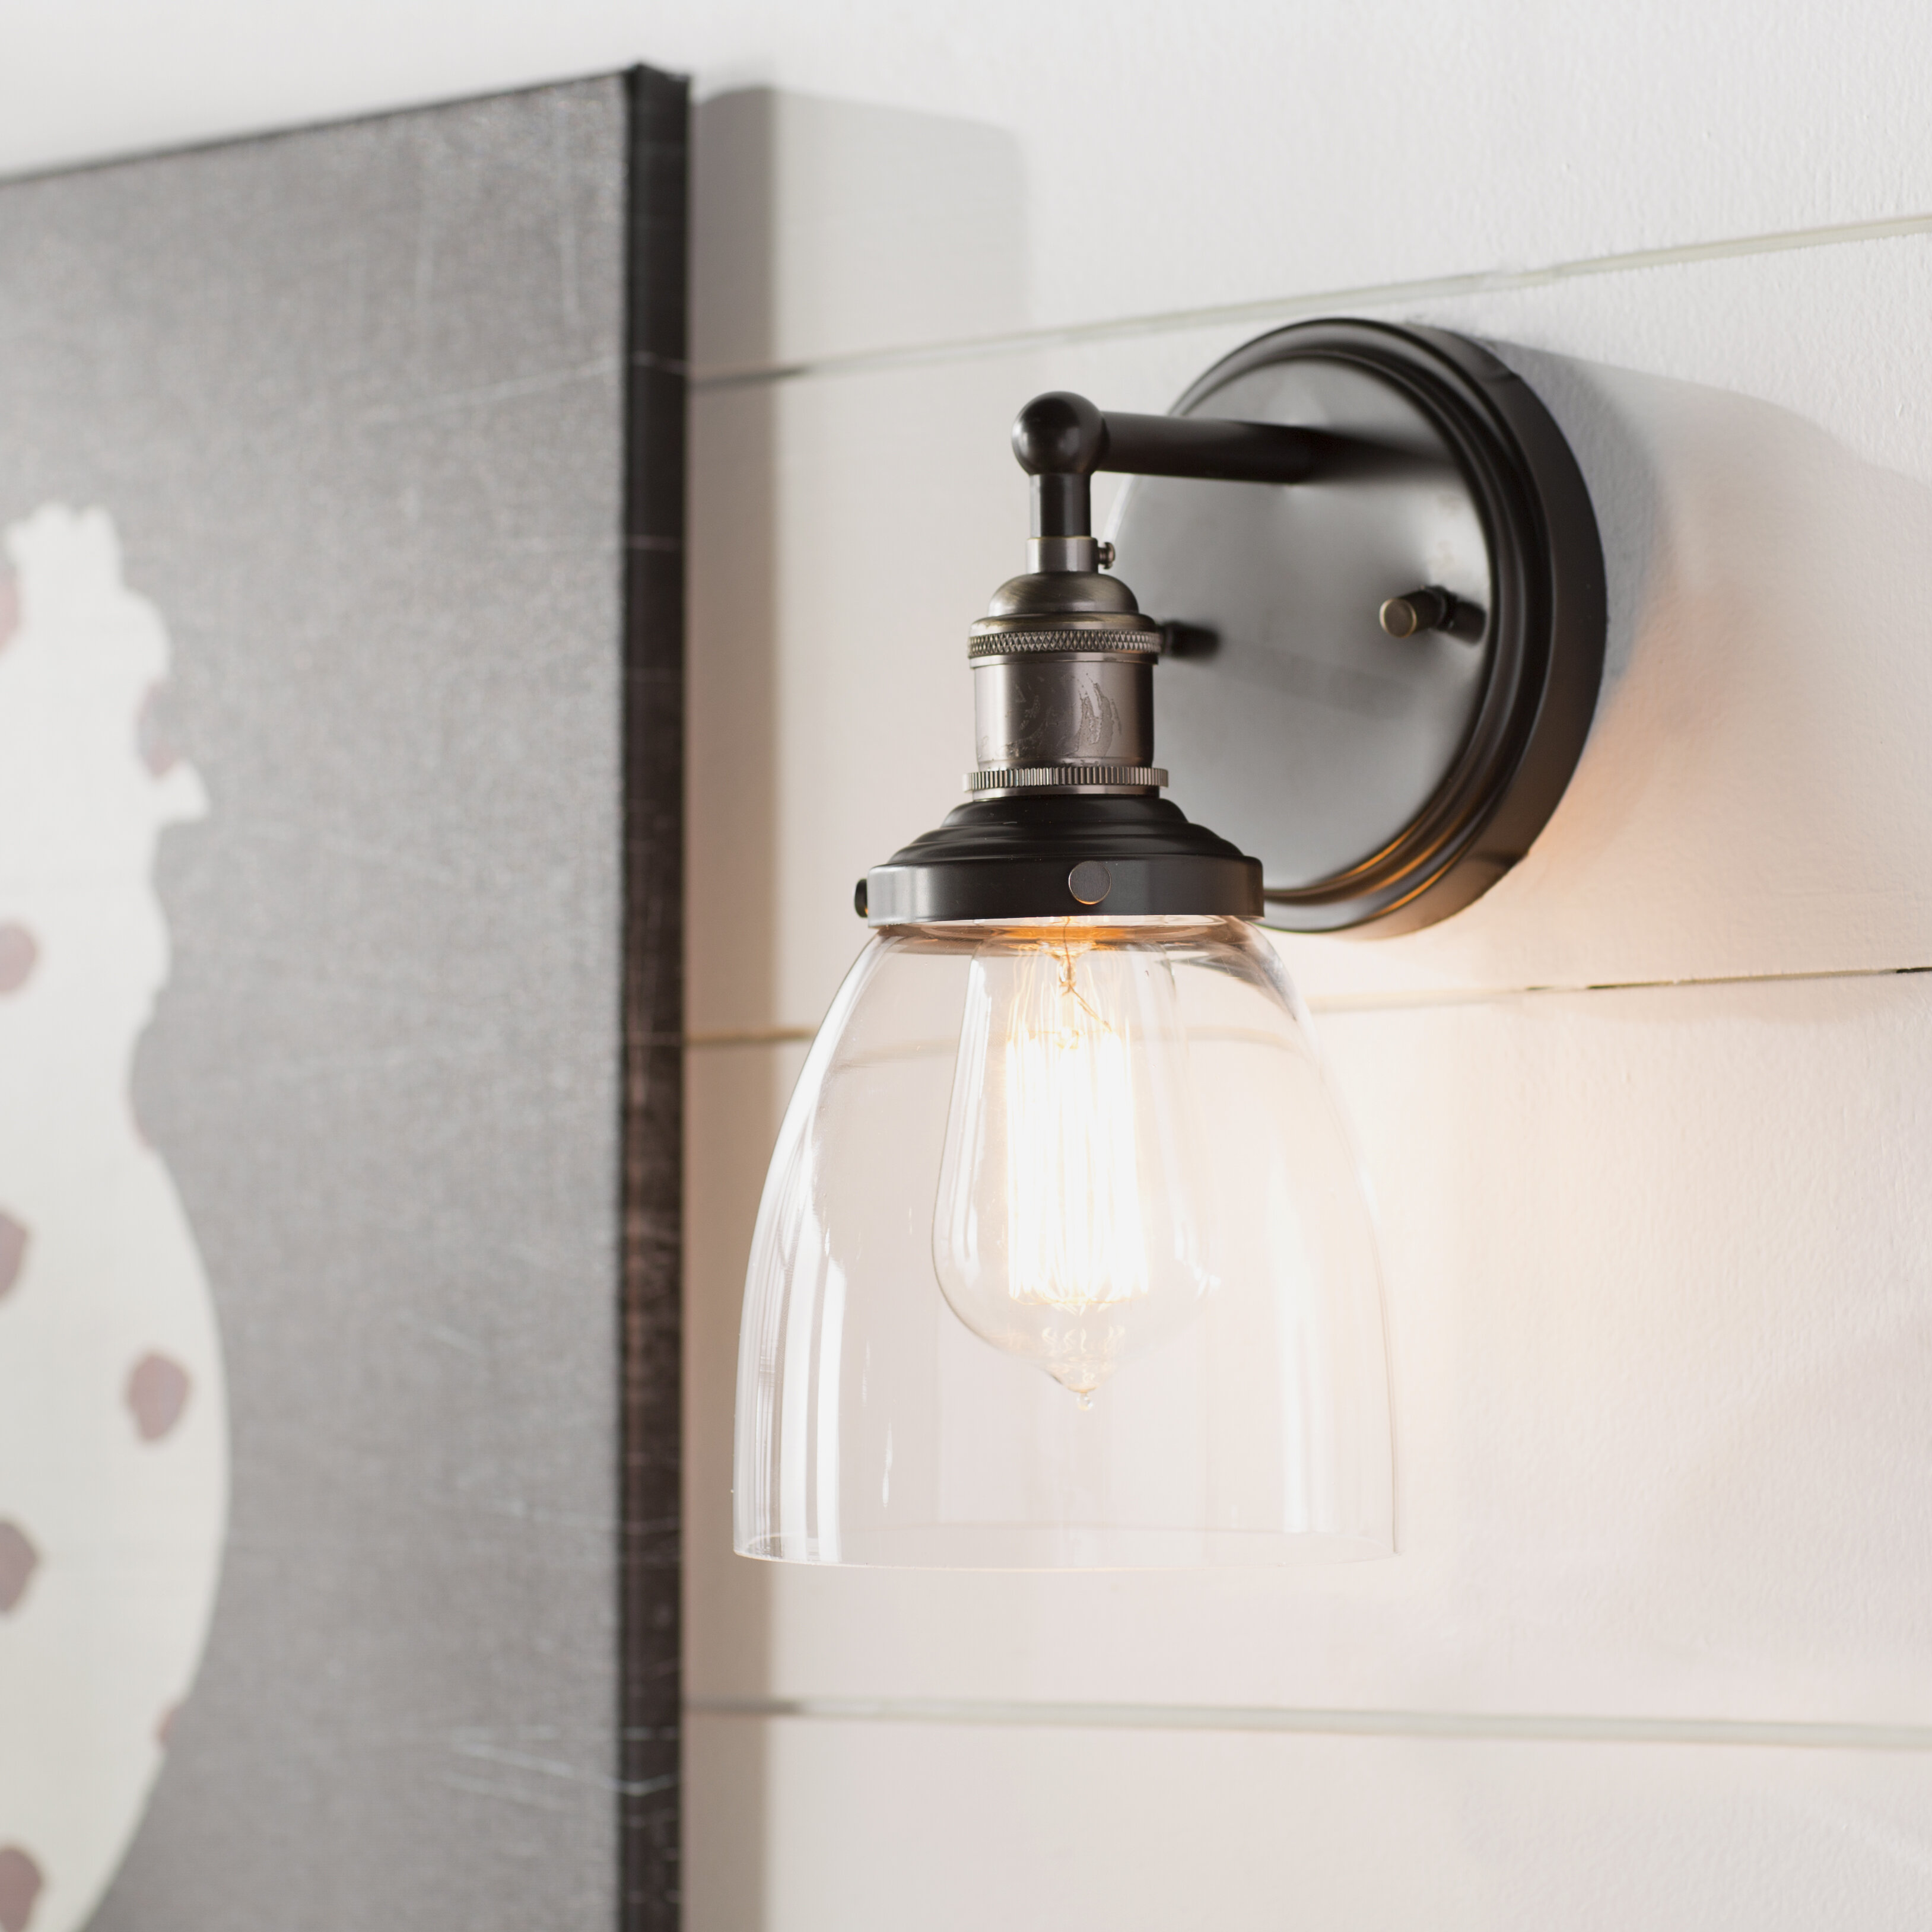 Edison Bulb Fixtures You ll Love